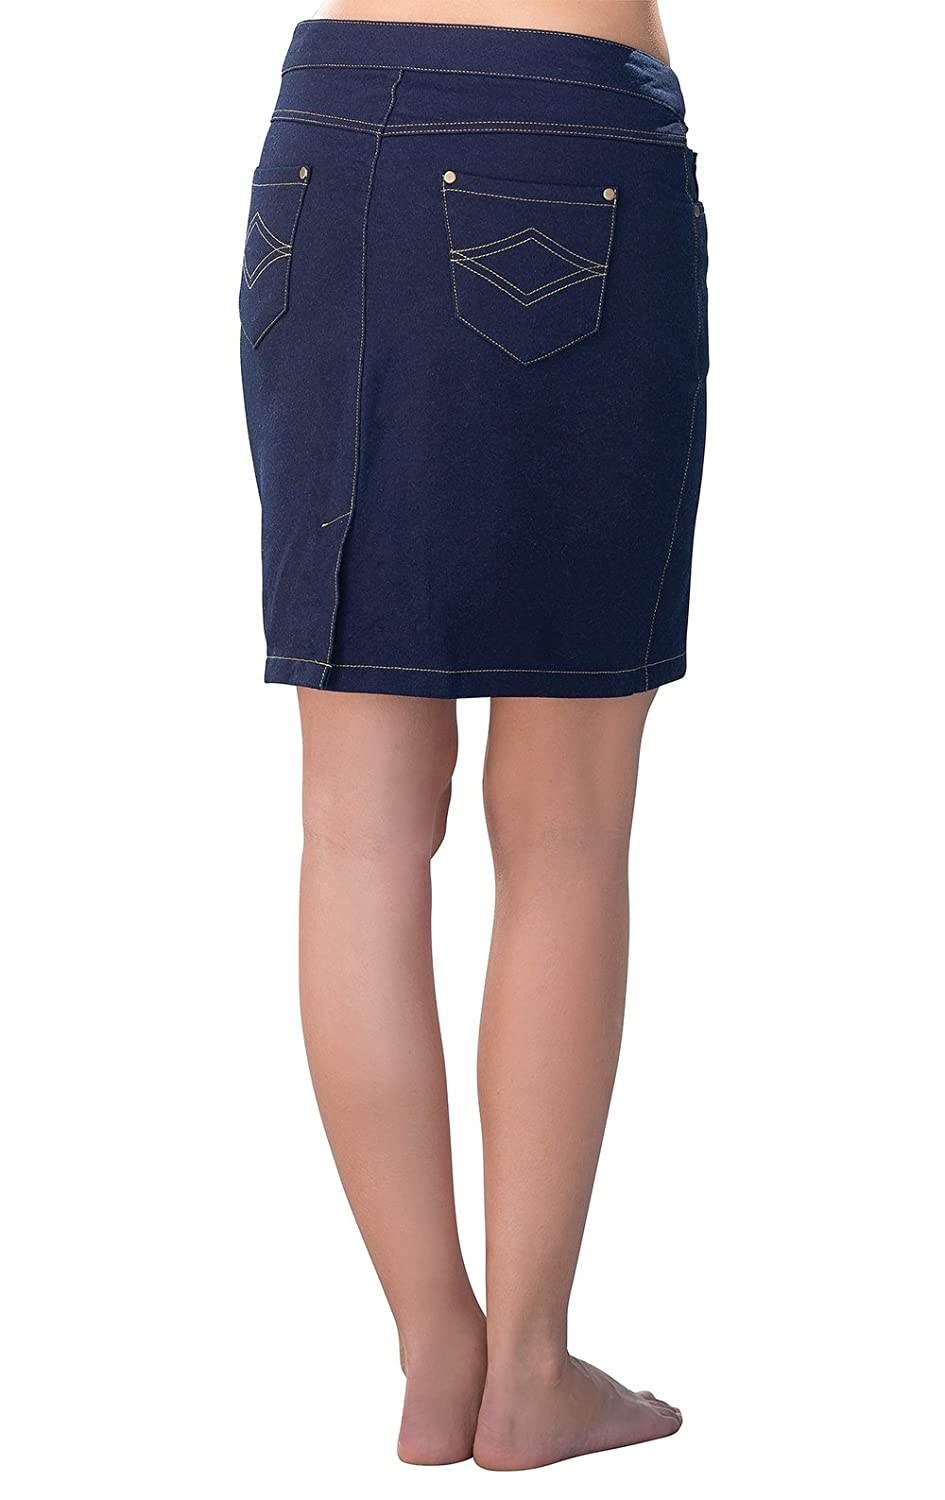 15ce617423 Looks Like A Denim Skirt, Feels like PJs - Made with our exclusive  Dormisoft® Denim that provides that classic denim look but feels like your  comfiest ...